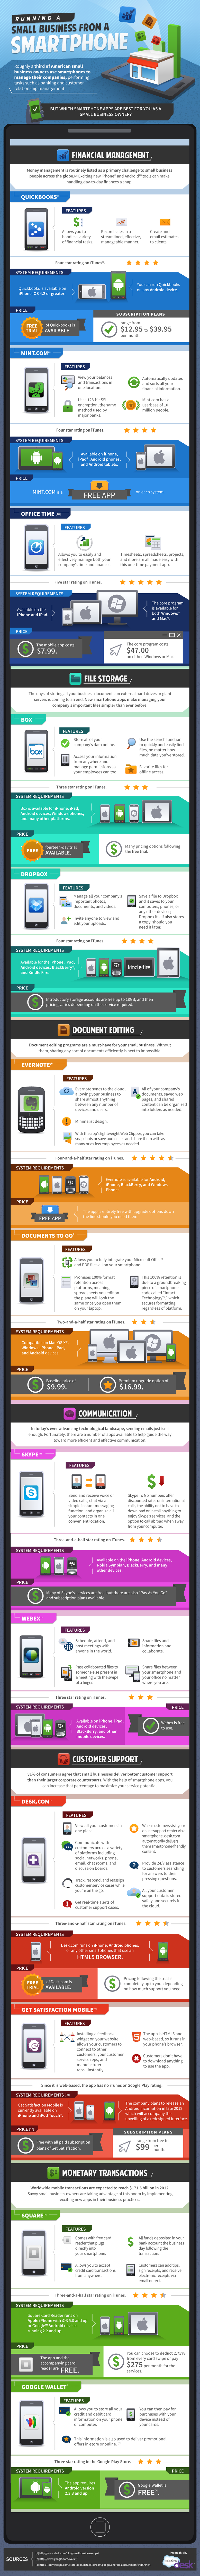 Run a small business from your smartphone